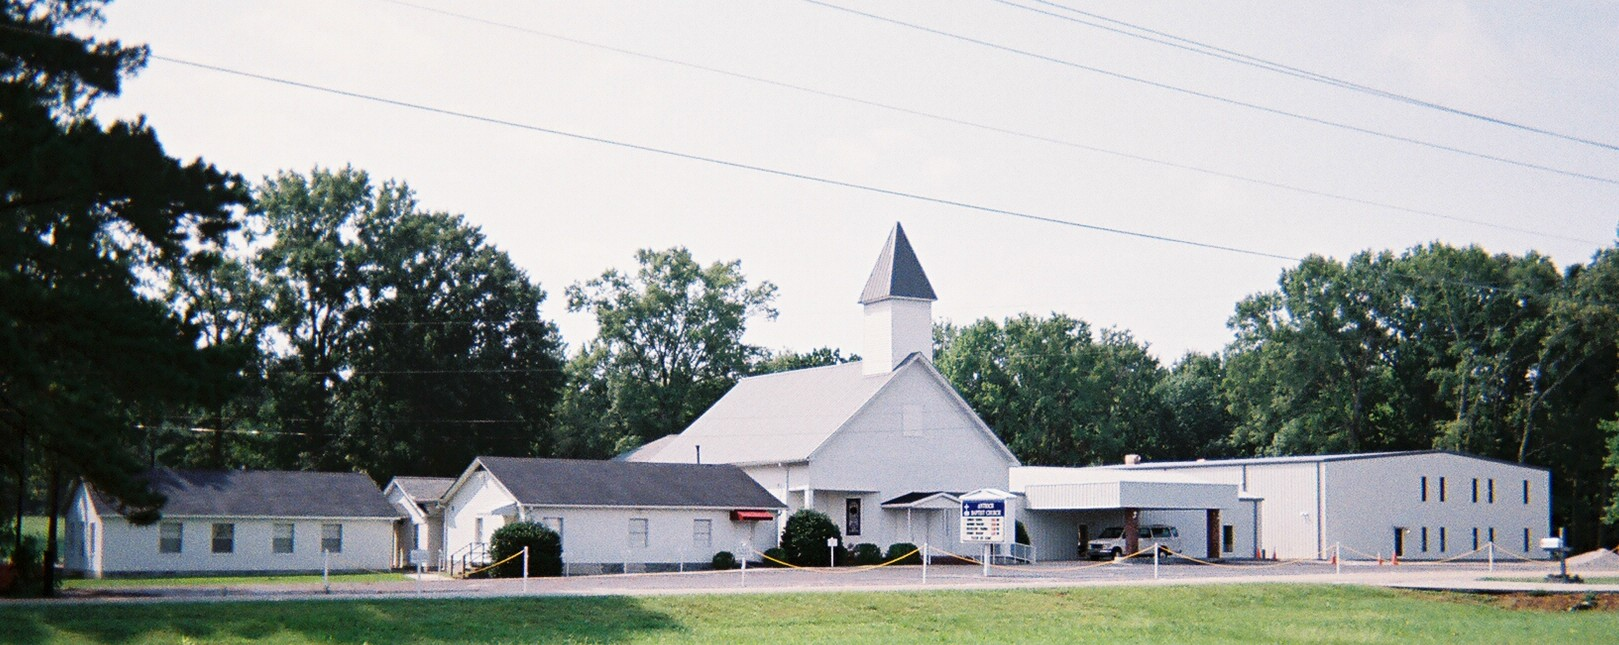 Antioch Baptist Church at Columbiana, Georgia